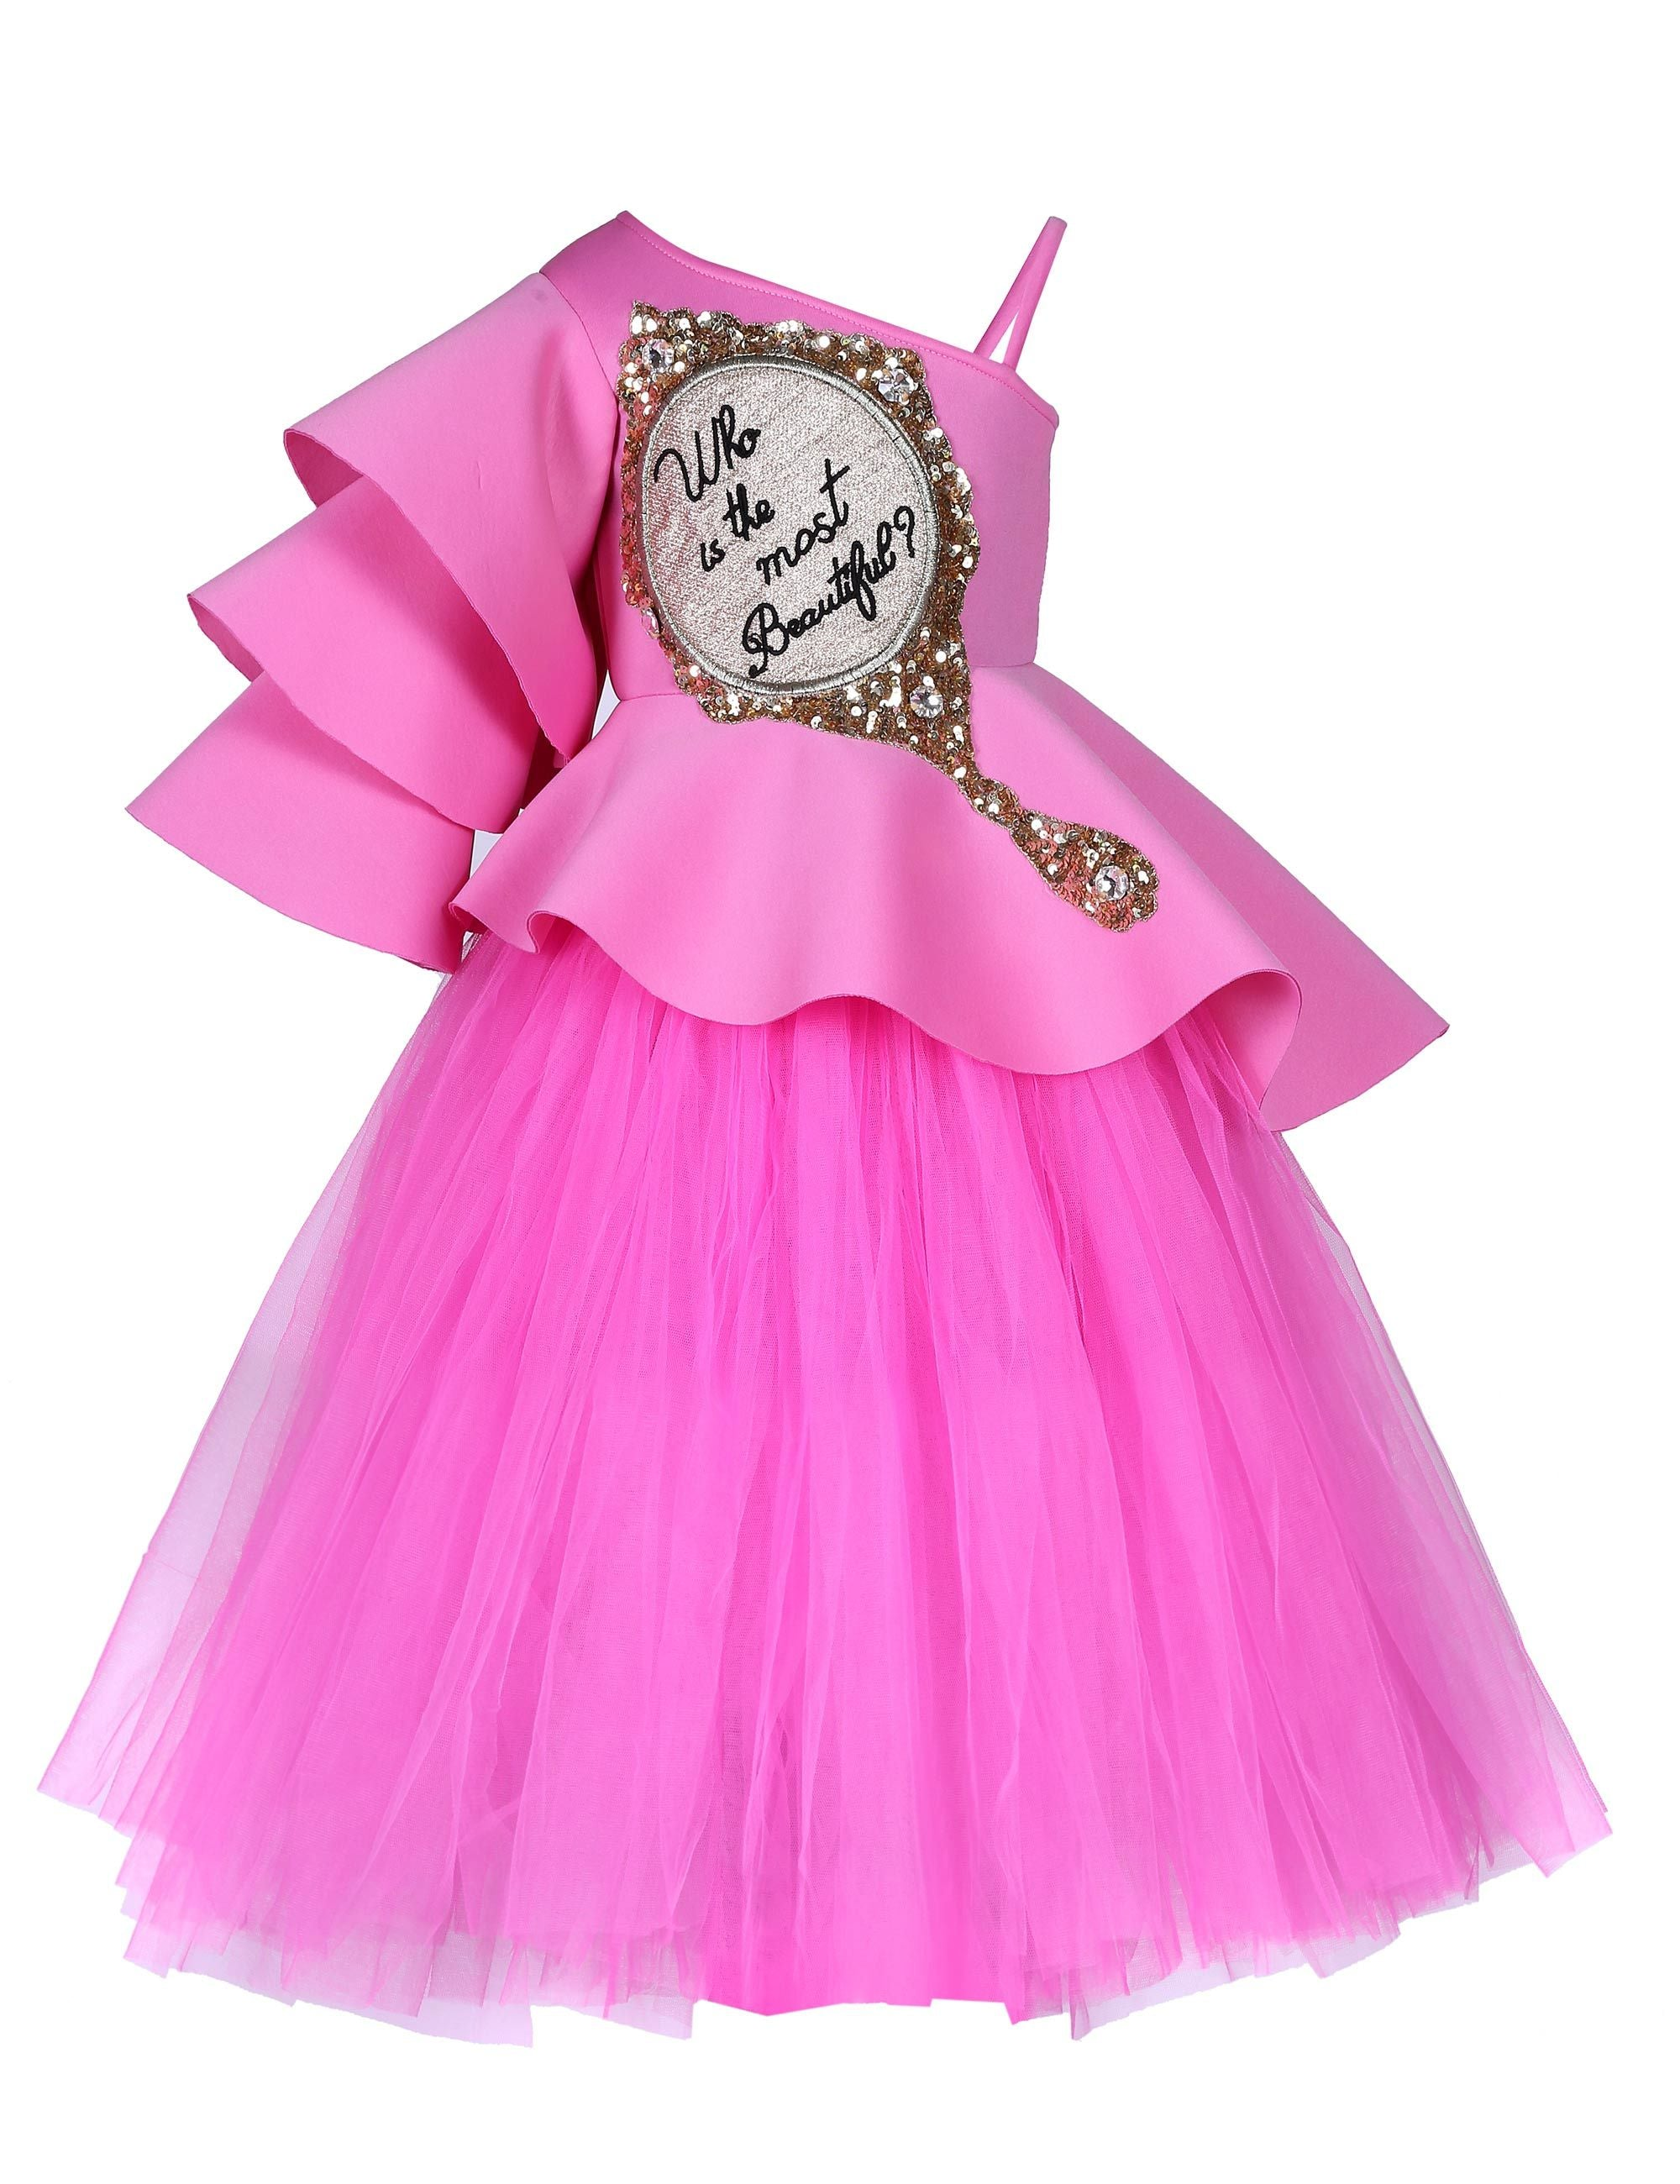 Pink Triple Layered Mirror Corset and Tutu Skirt Gown for Girls